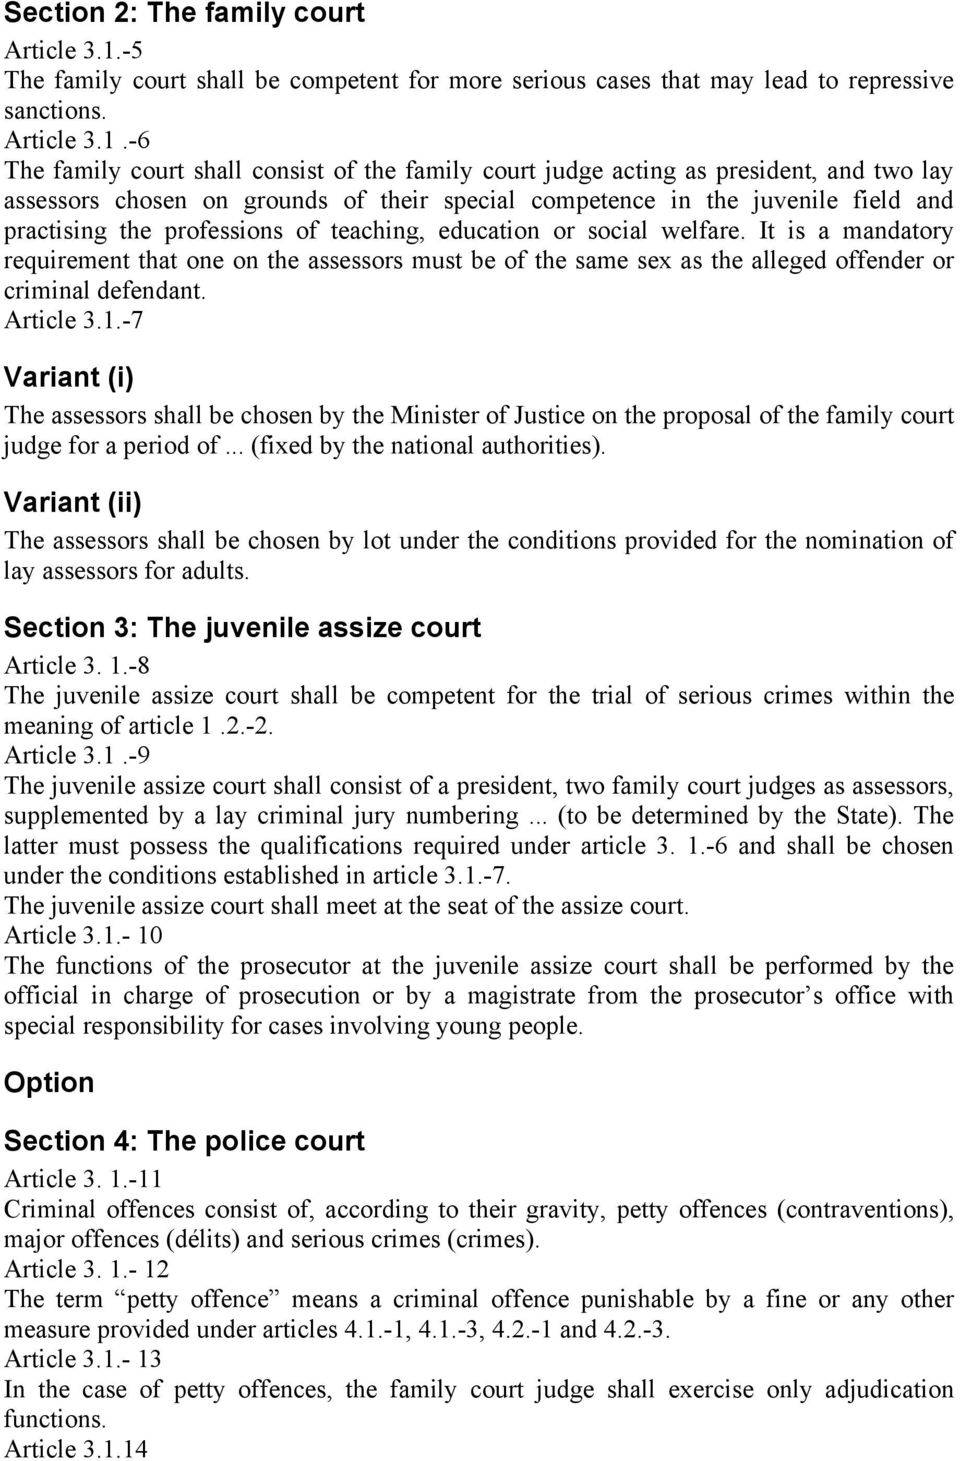 -6 The family court shall consist of the family court judge acting as president, and two lay assessors chosen on grounds of their special competence in the juvenile field and practising the